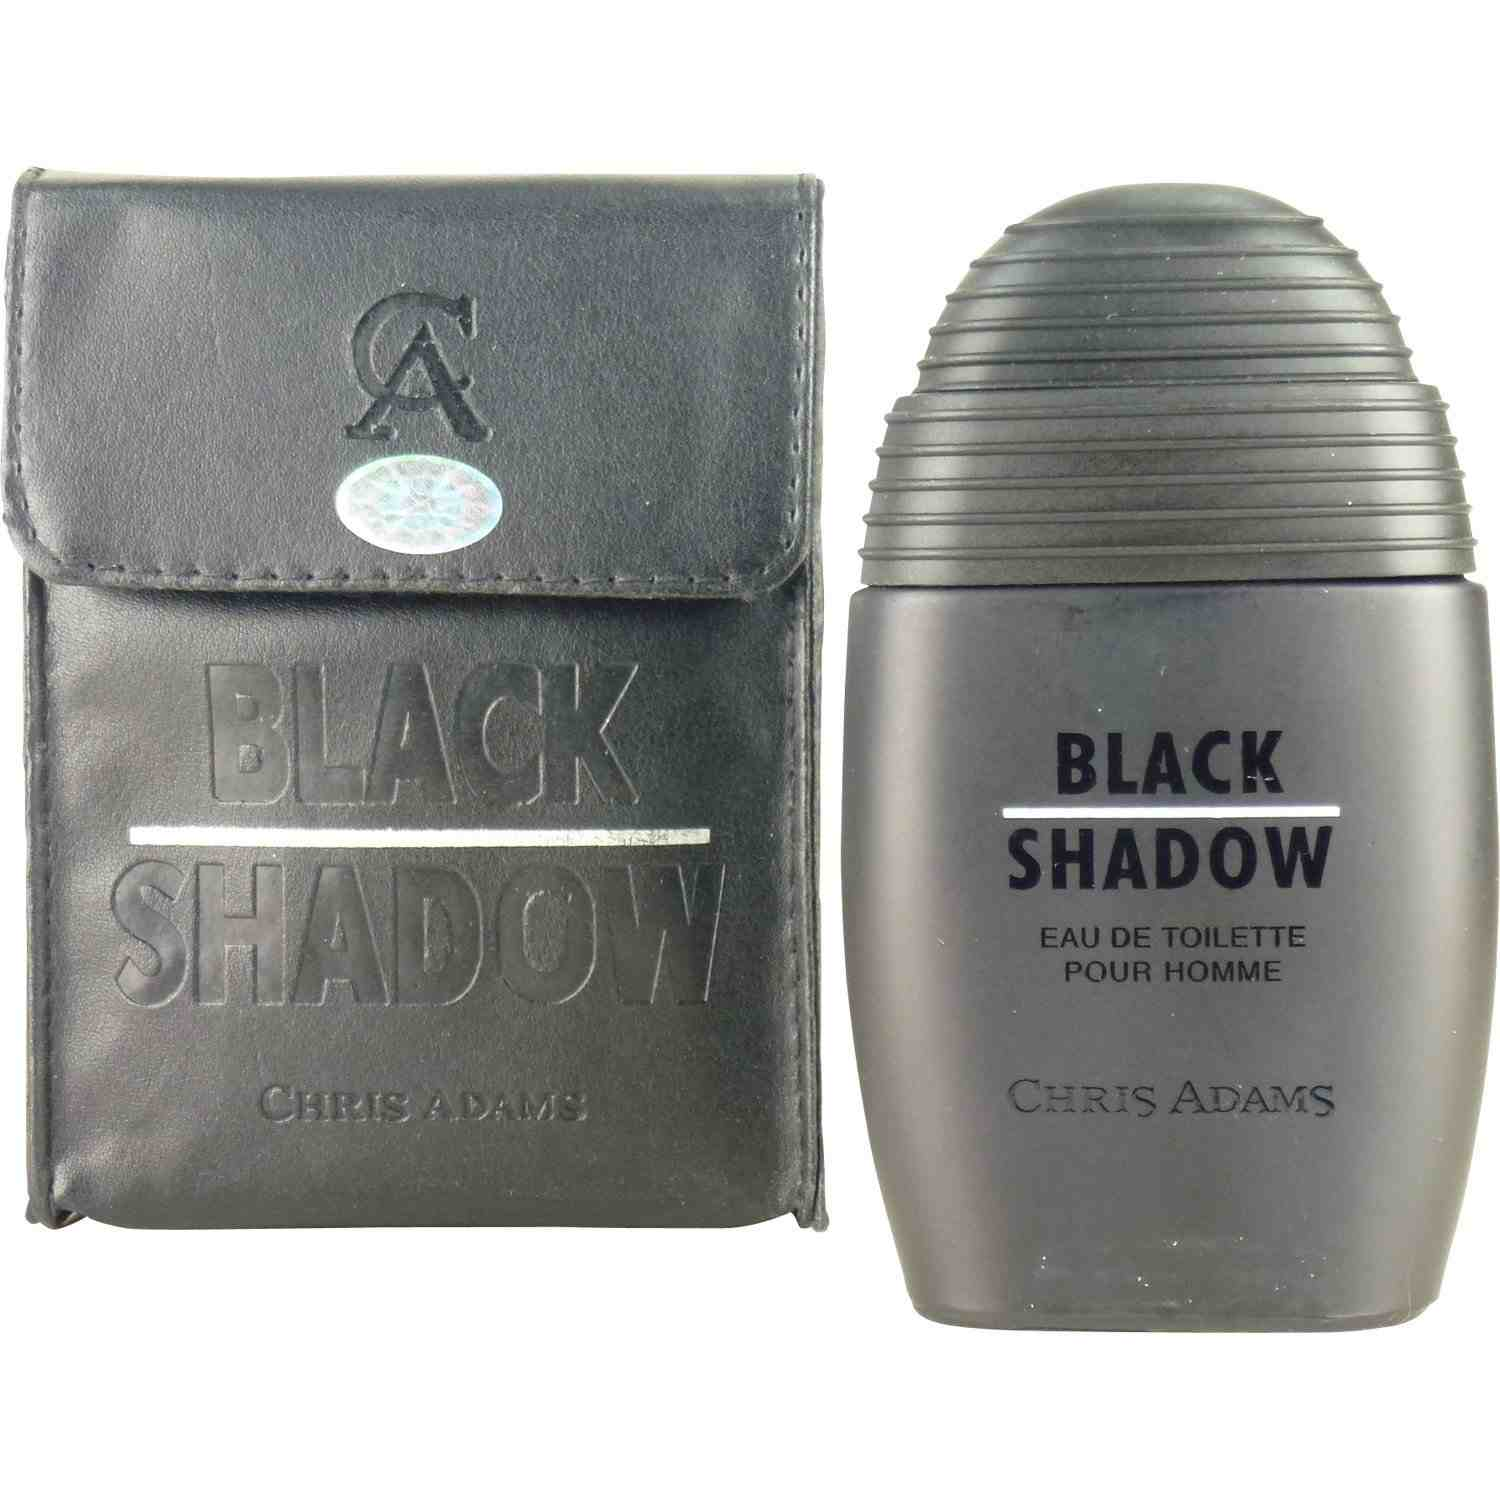 Black Shadow  - Pour Homme (for men) 100ml Spray by Chris Adams